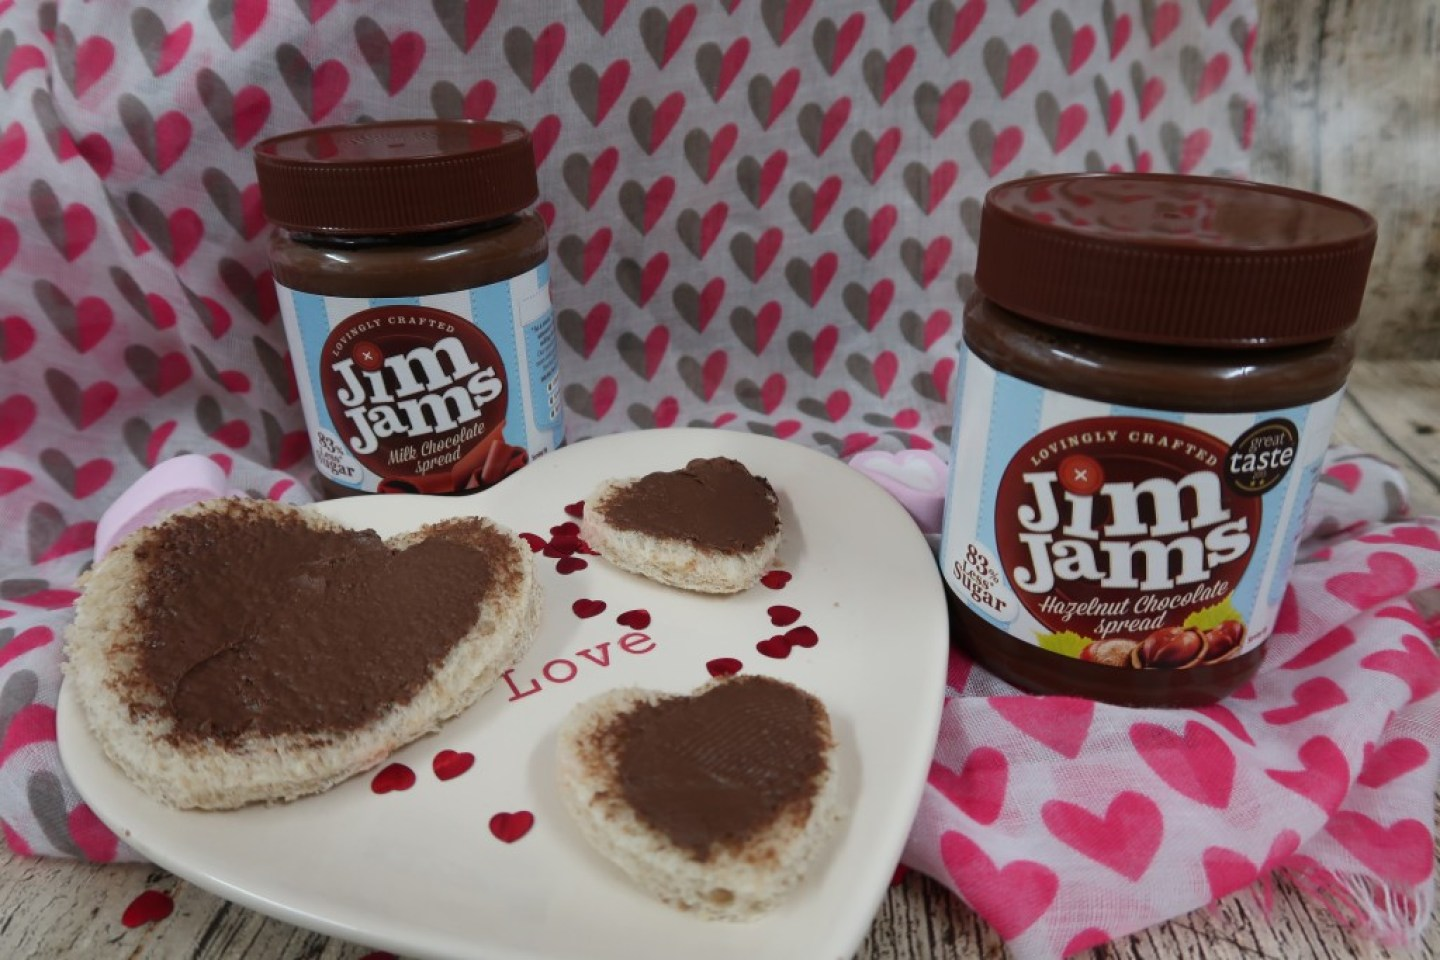 heart shape bread with chocolate spread